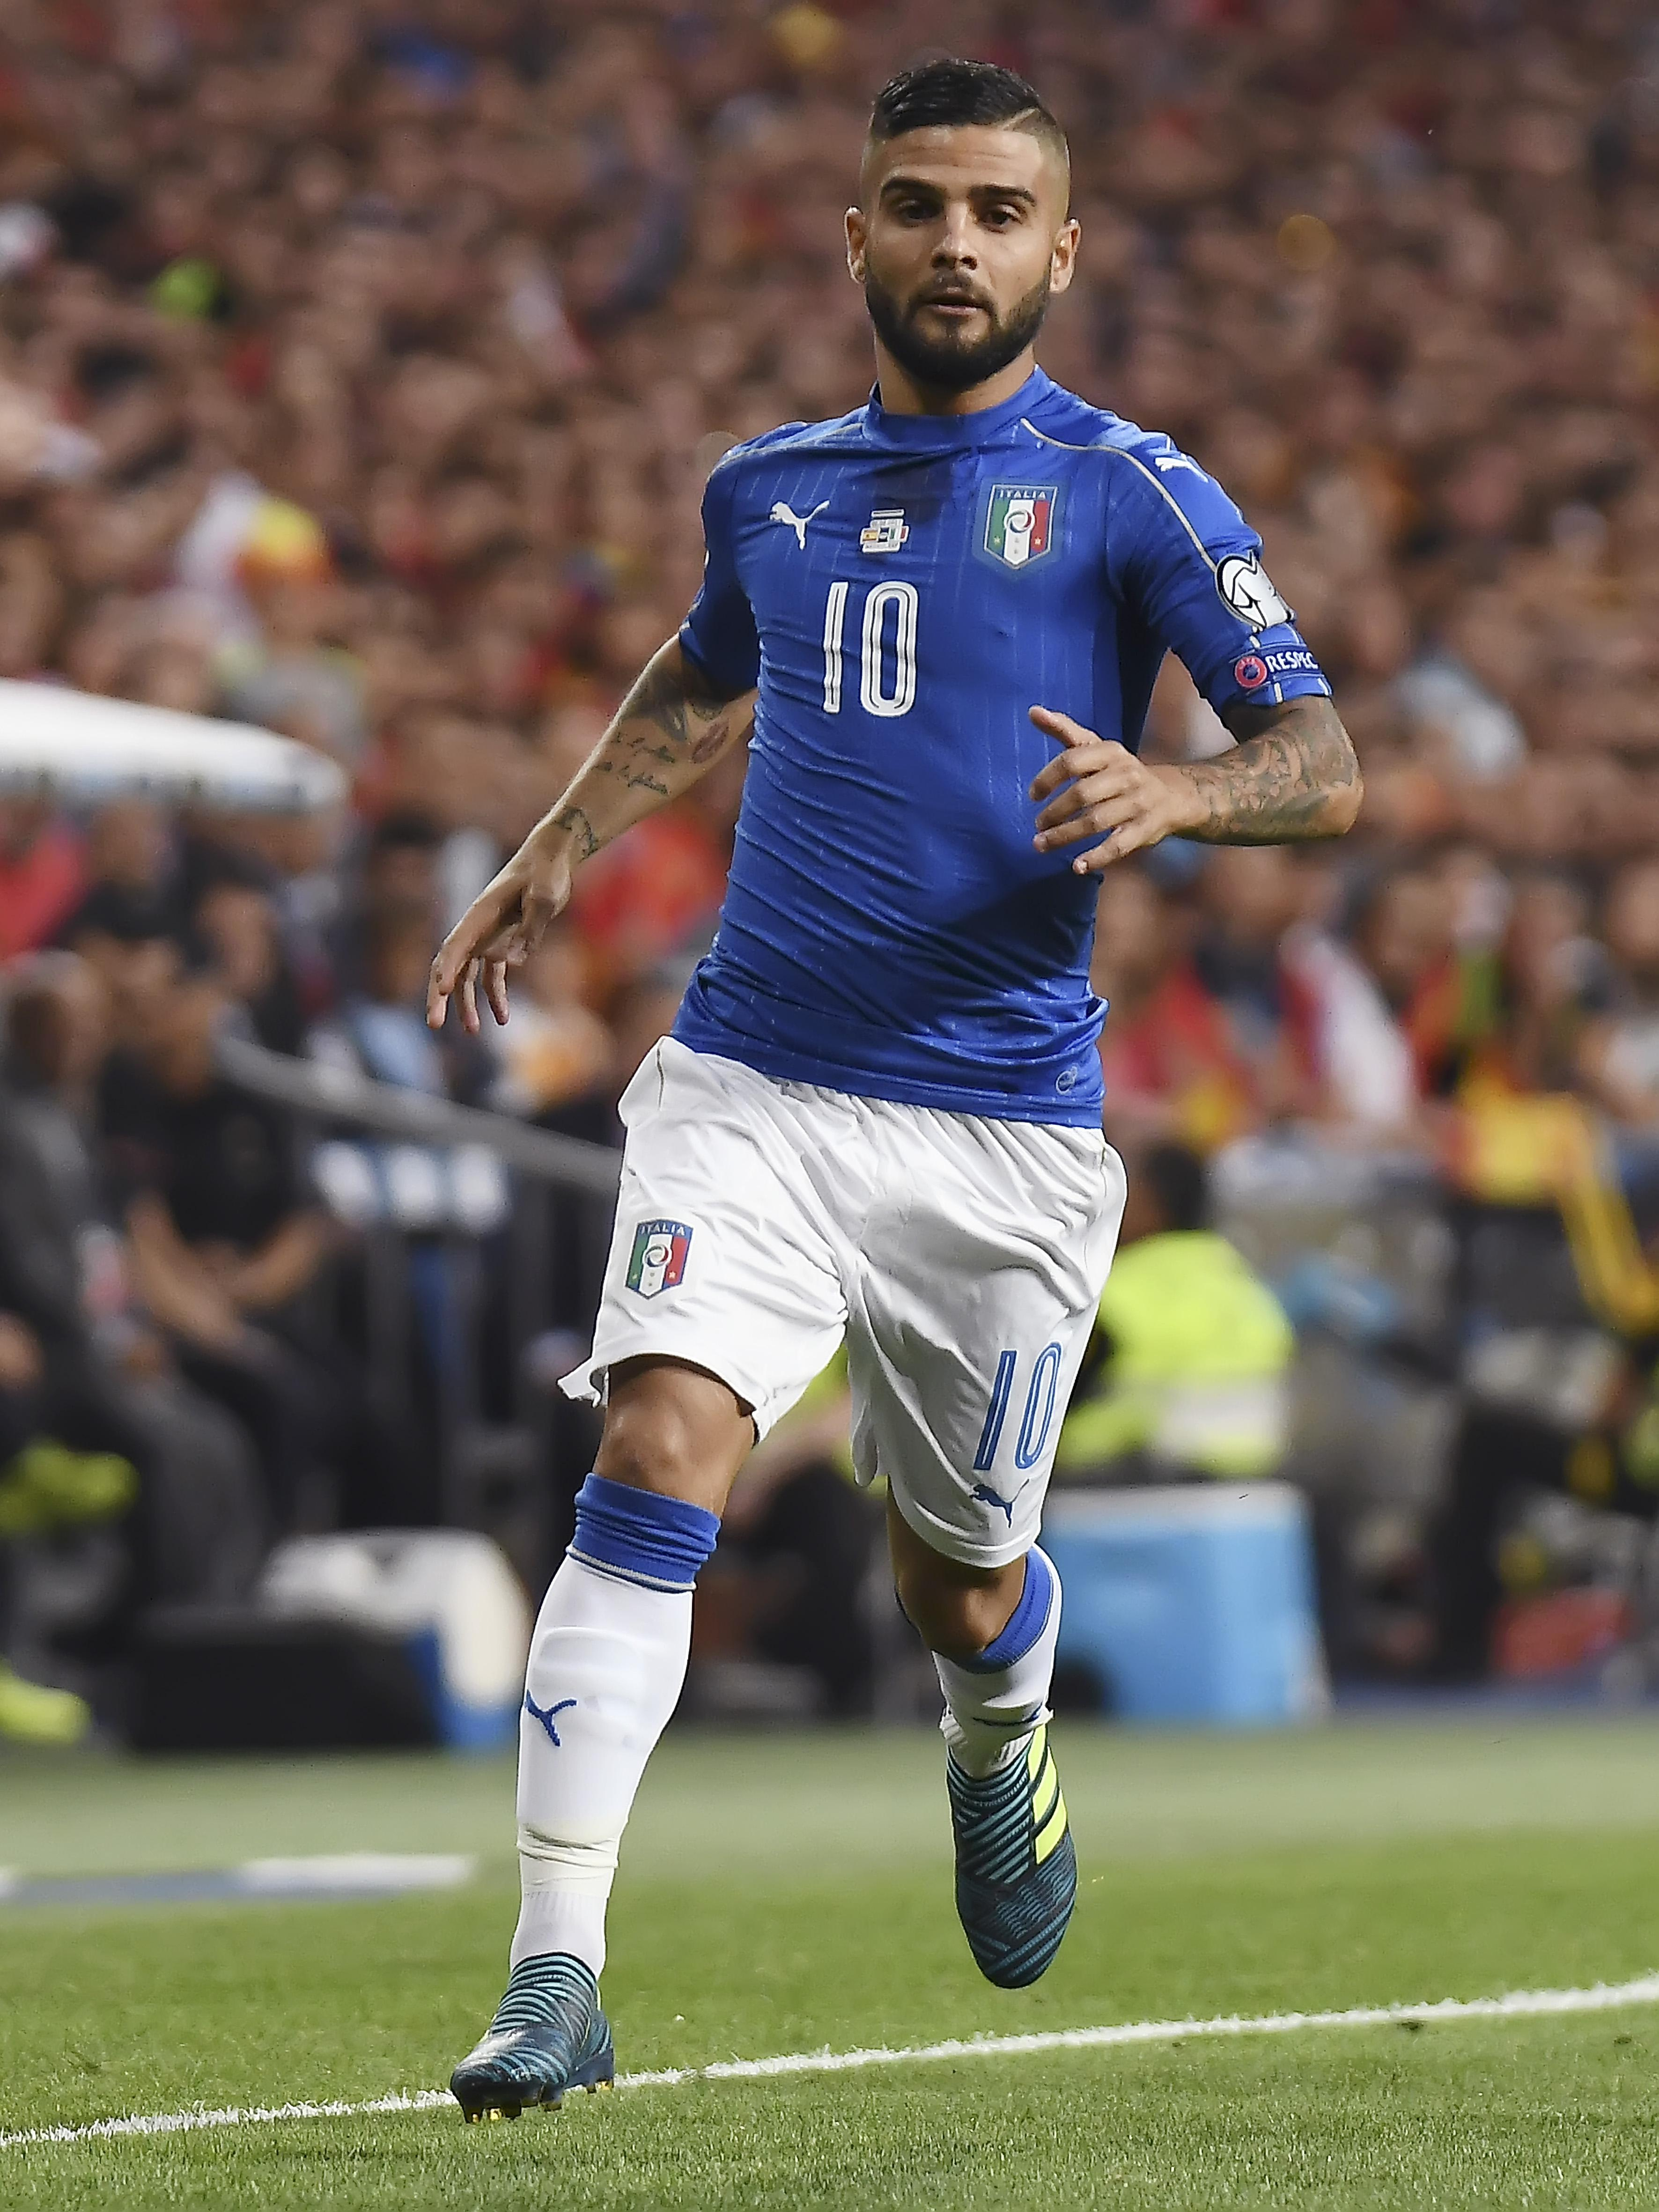 Lorenzo Insigne has been in incredible form for Napoli this season